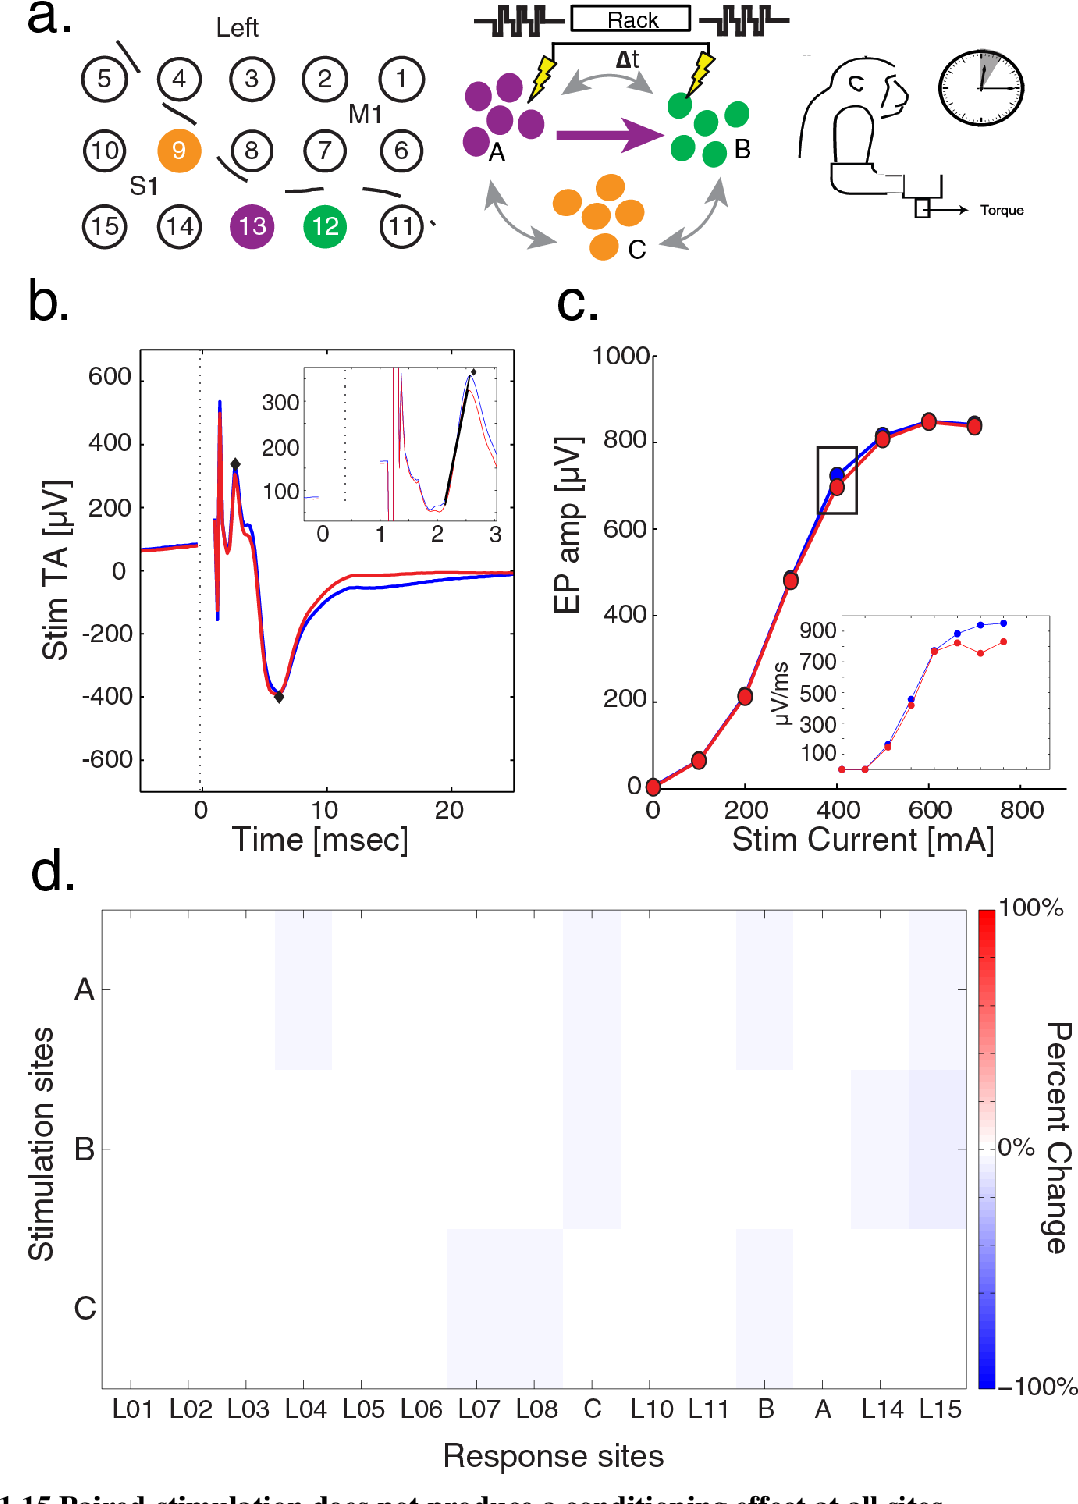 Figure 1.15 Paired-stimulation does not produce a conditioning effect at all sites. a) Schematic of recording grid with A (purple), B (green), and C (orange) sites denoted for a conditioning session at a 20 ms delay in monkey U while in the recording booth for 1 hour. b) StTA of AB EP before (blue) and after (red) conditioning. Inset, expansion of StTA showing the slope (black line) of the first EP phase. Black diamonds denote peak and trough used to calculate amplitude in c. c) AB stimulus-response curve before (blue) and after (red) conditioning. Black box denotes current depicted in b. Inset, stimulus-response curve before and after conditioning for slope of first EP phase. d) Percent change in EP amplitude from A, B, and C to all other recording sites after conditioning.